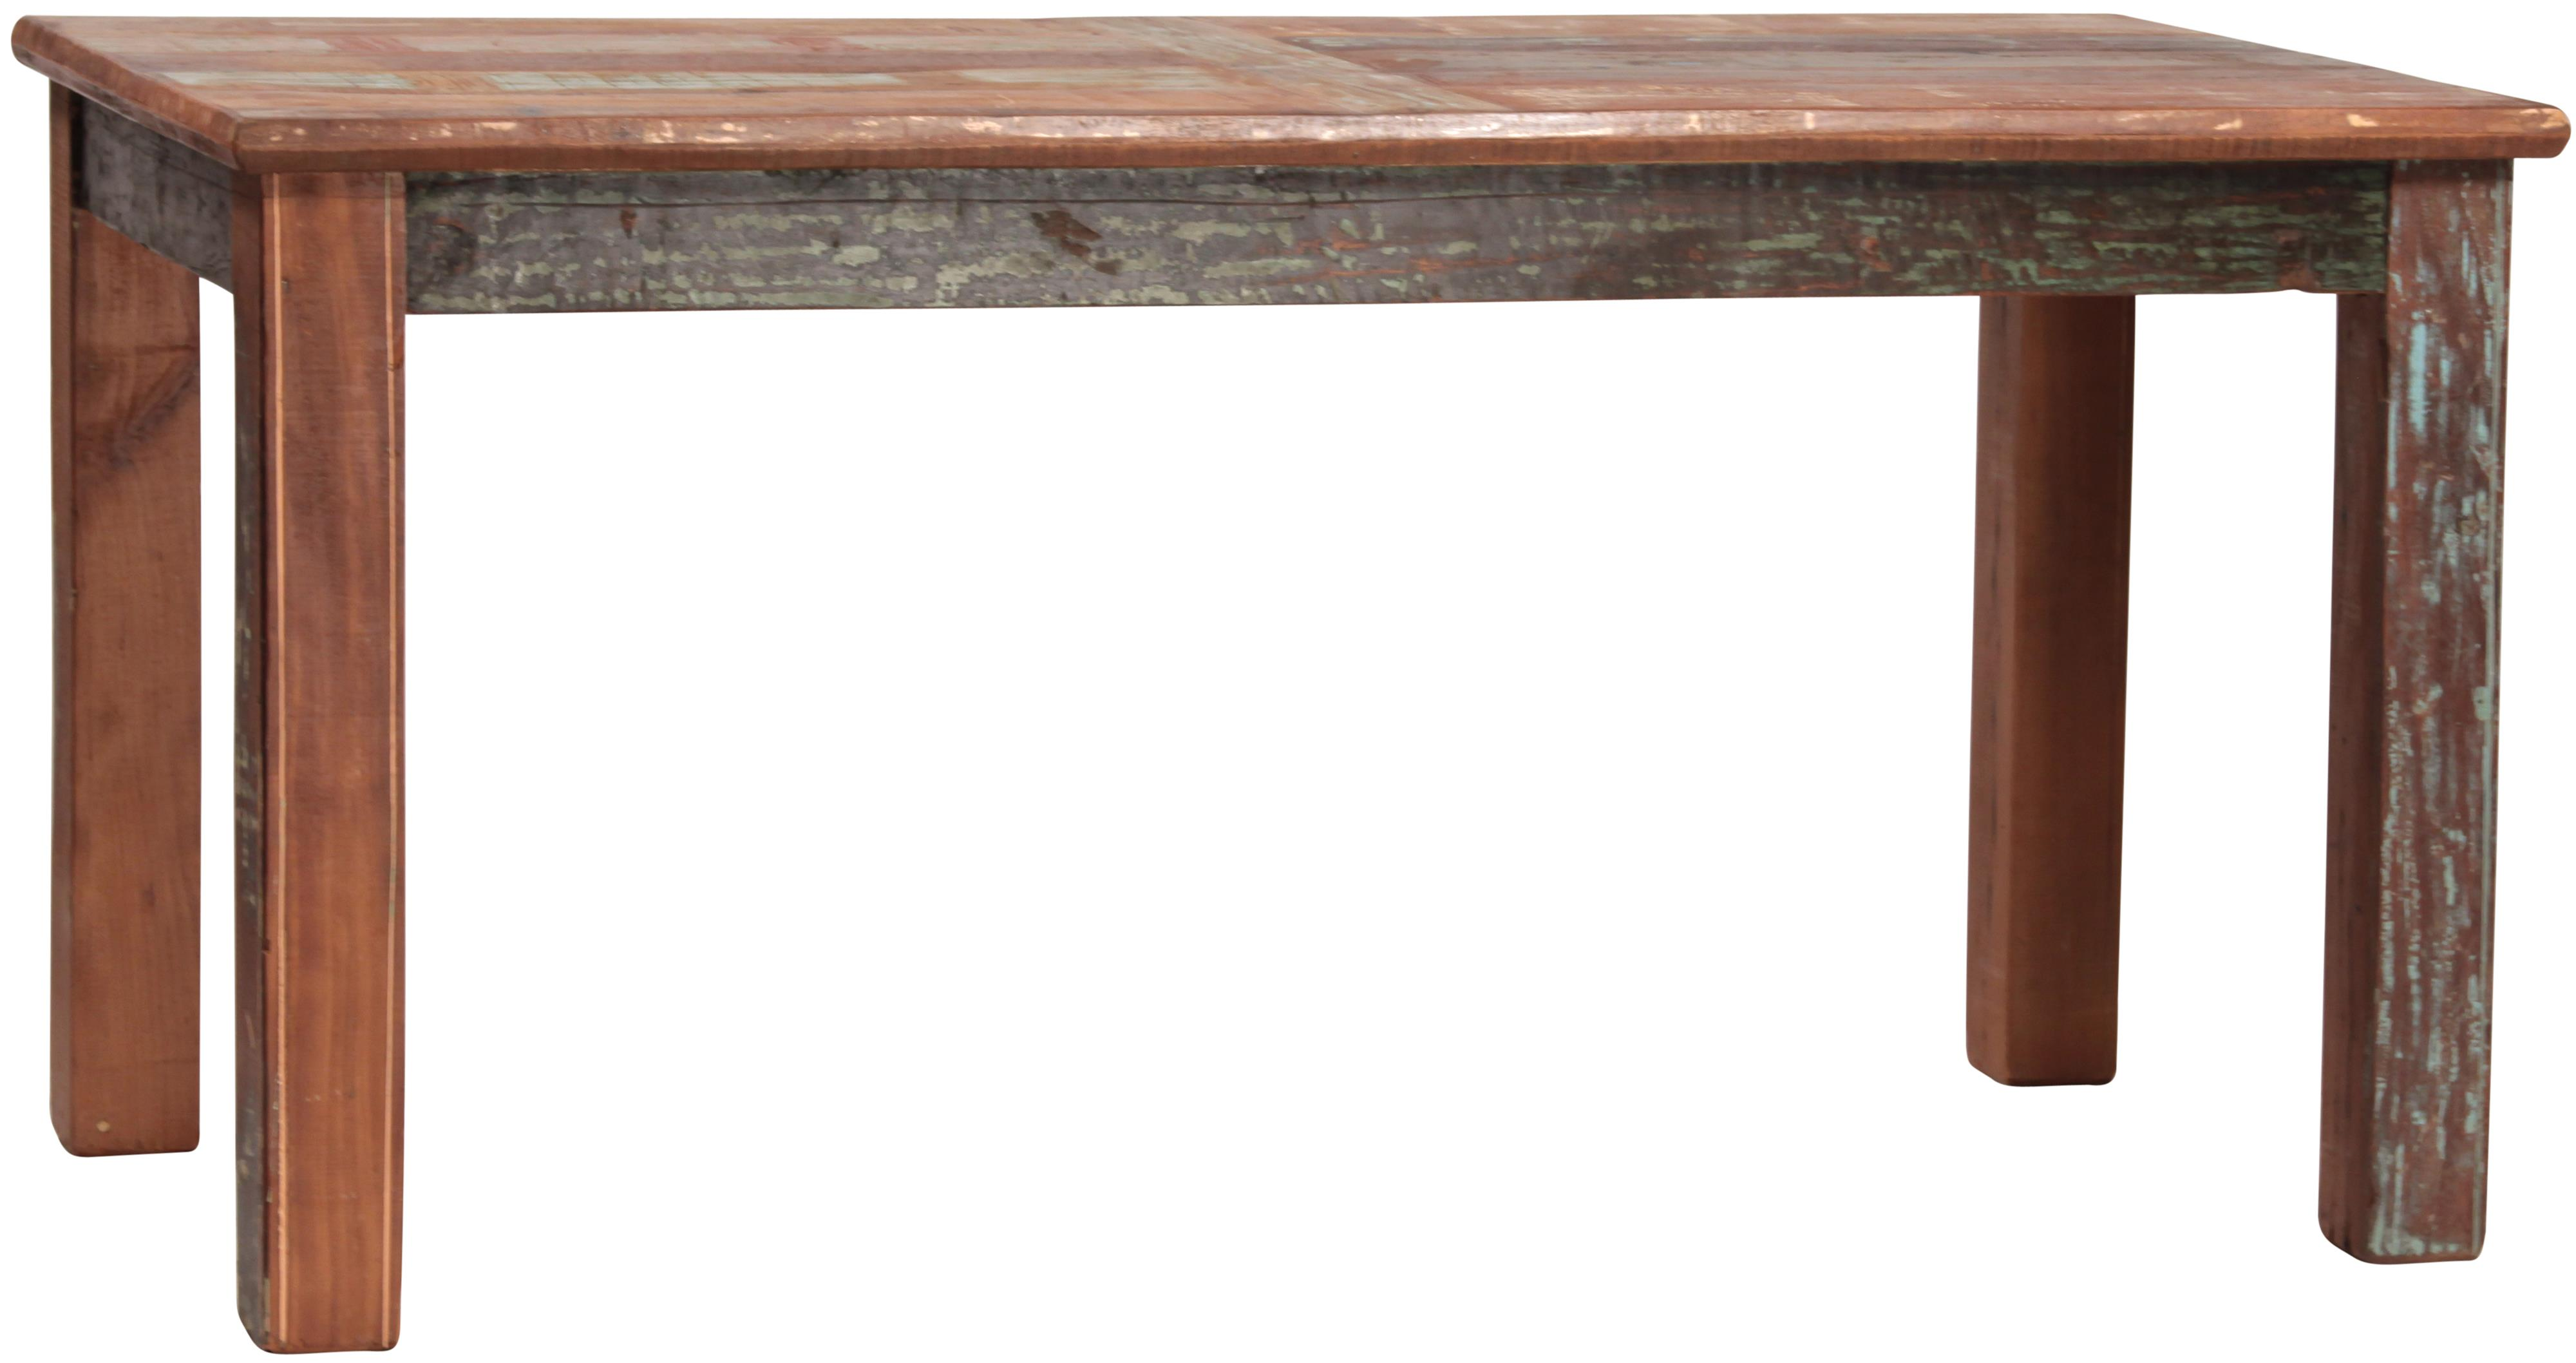 Dovetail Furniture Dovetail Wood Dinner Table Olinde 39 S